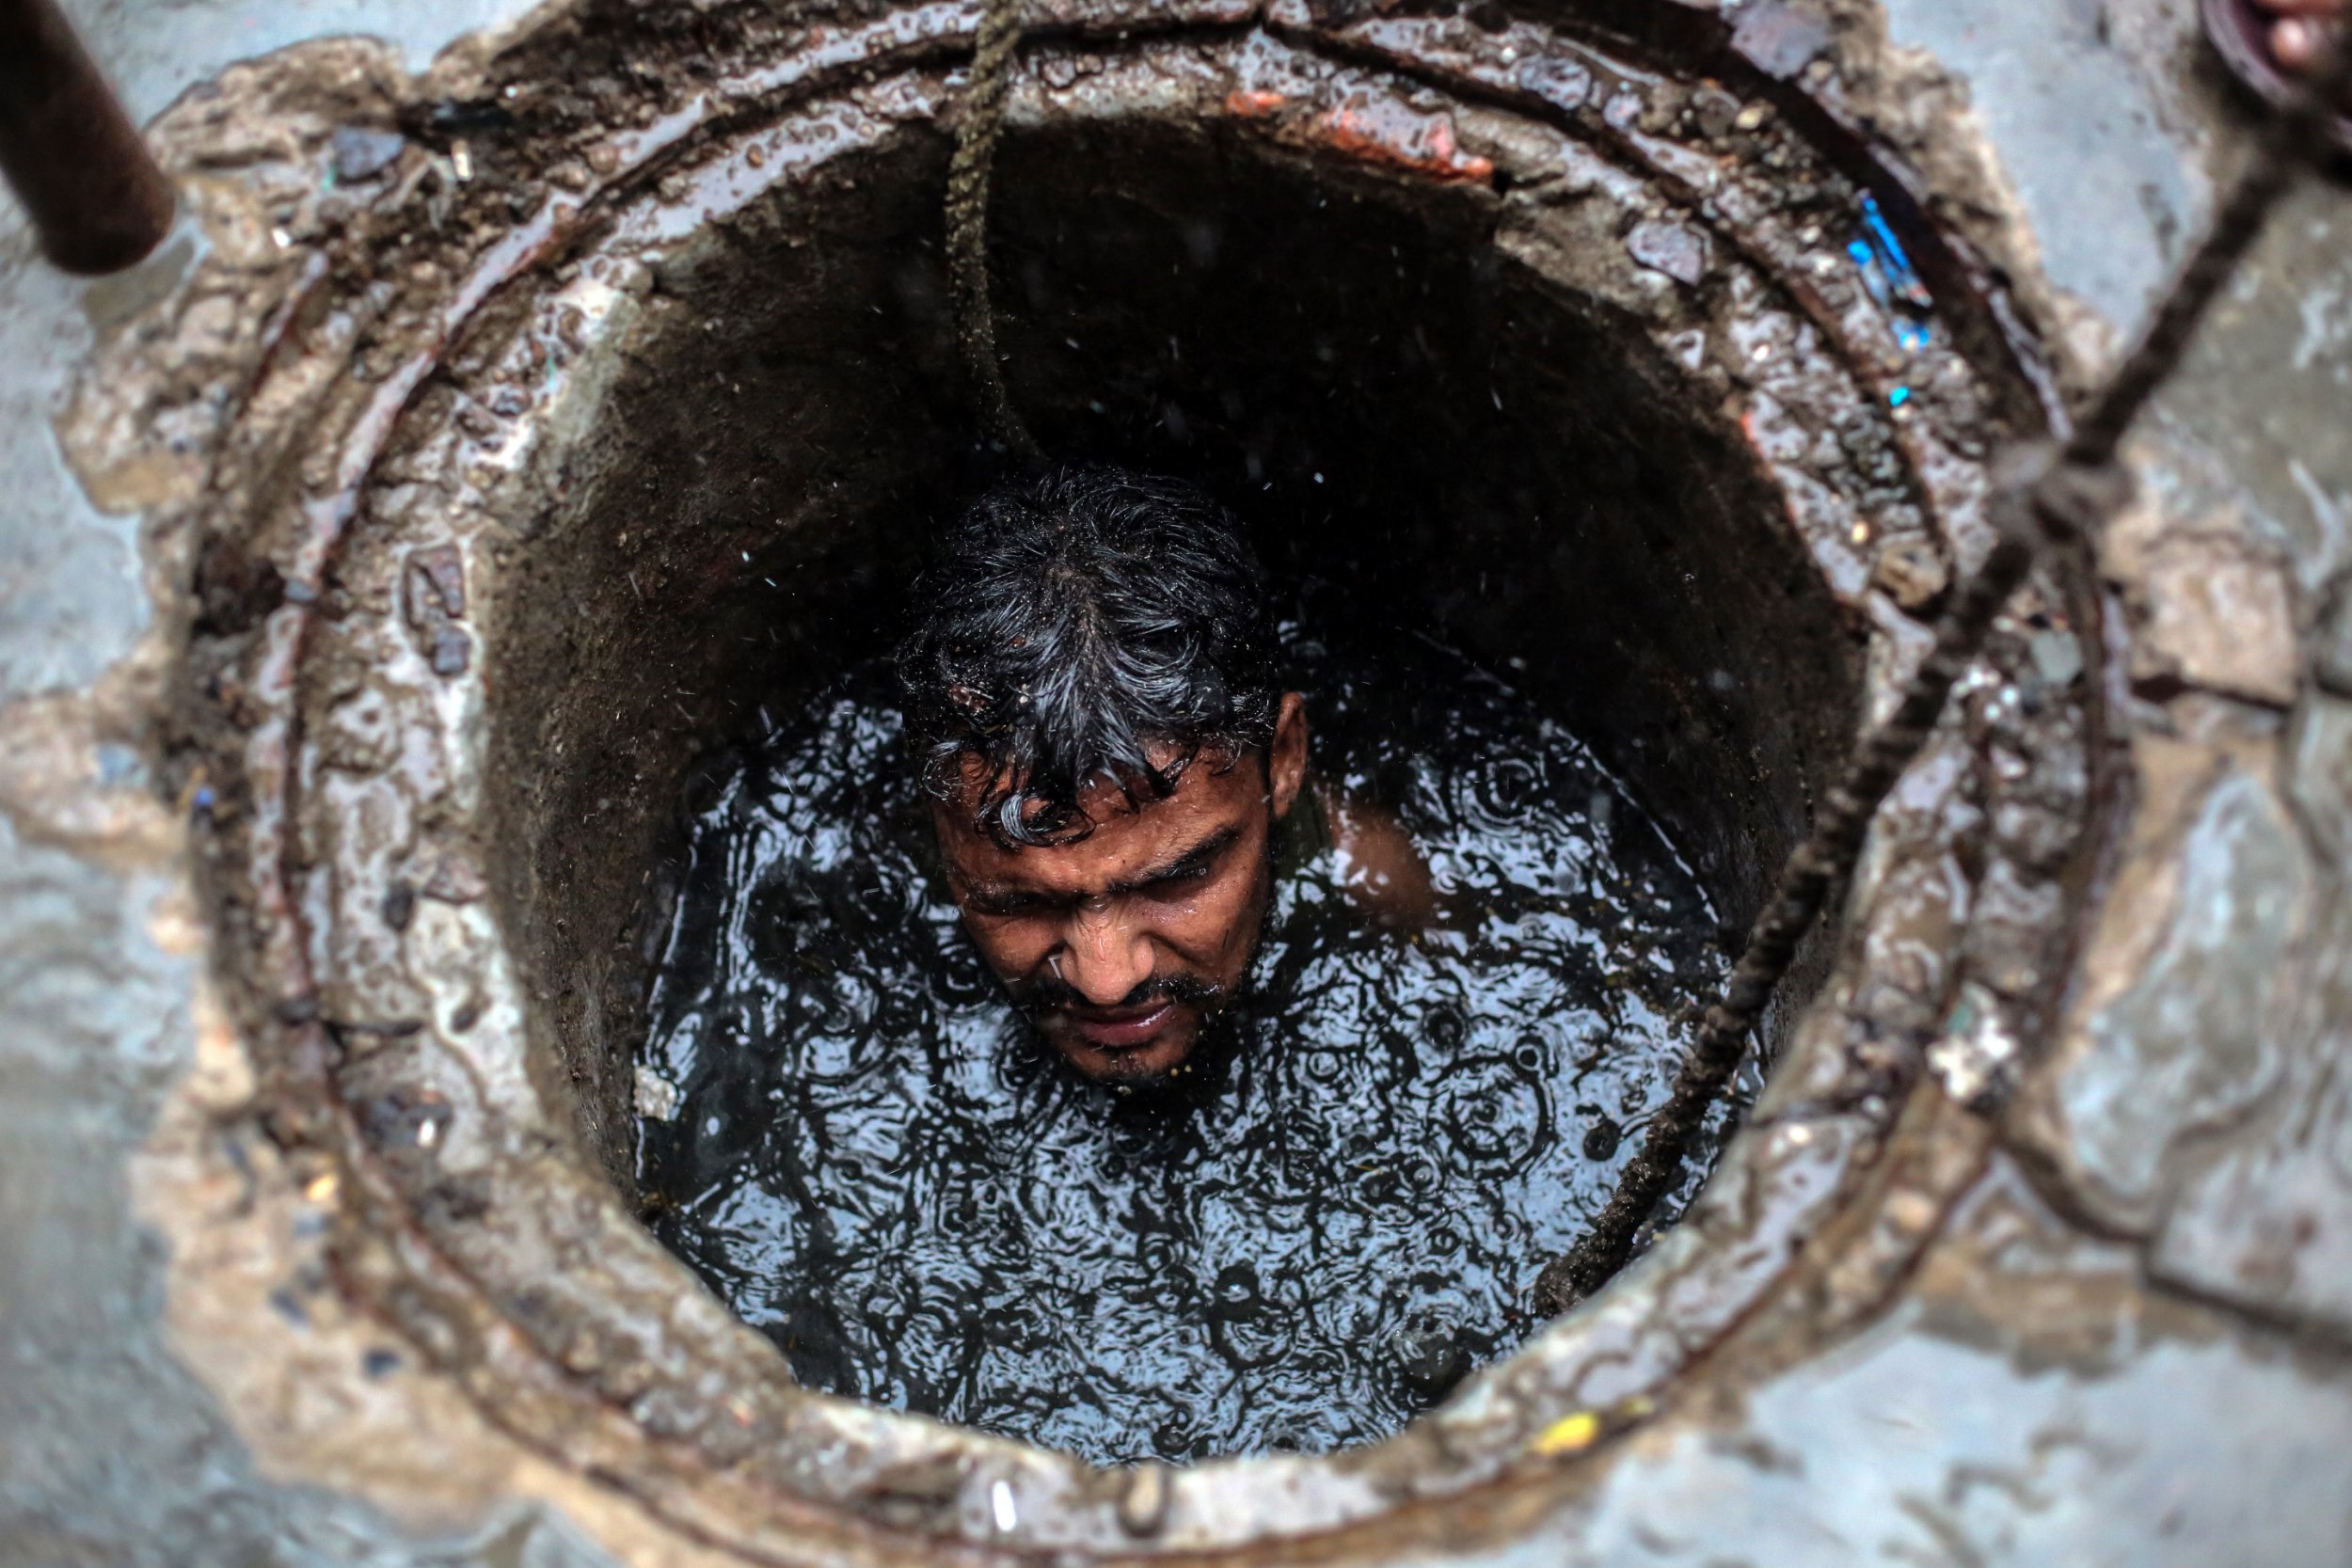 epa07110673 (03/26) Joney, a 26 year-old sewer worker cleans a sewer line in Ghaziabad, Uttar Pradesh, India, 26 July 2018. Joney along with other sewer workers cleans the sewer lines by going inside the pits in Ghaziabad area without any safety masks or any safety equipment except for a safety belt to lift them up. Recent official government statistics showed one manual scavengers has died every five days since the beginning of 2017 while cleaning sewers. This is one of the most dangerous jobs in India and its usually done by the Valmiki community, a sub-caste that is considered one of the lowest of the so-called ???untouchable??? or Dalit caste. Members of these communities have traditionally occupied cleaning and sanitation work in Indian society. EPA/RAJAT GUPTA ATTENTION: For the full PHOTO ESSAY text please see Advisory Notice epa07110670